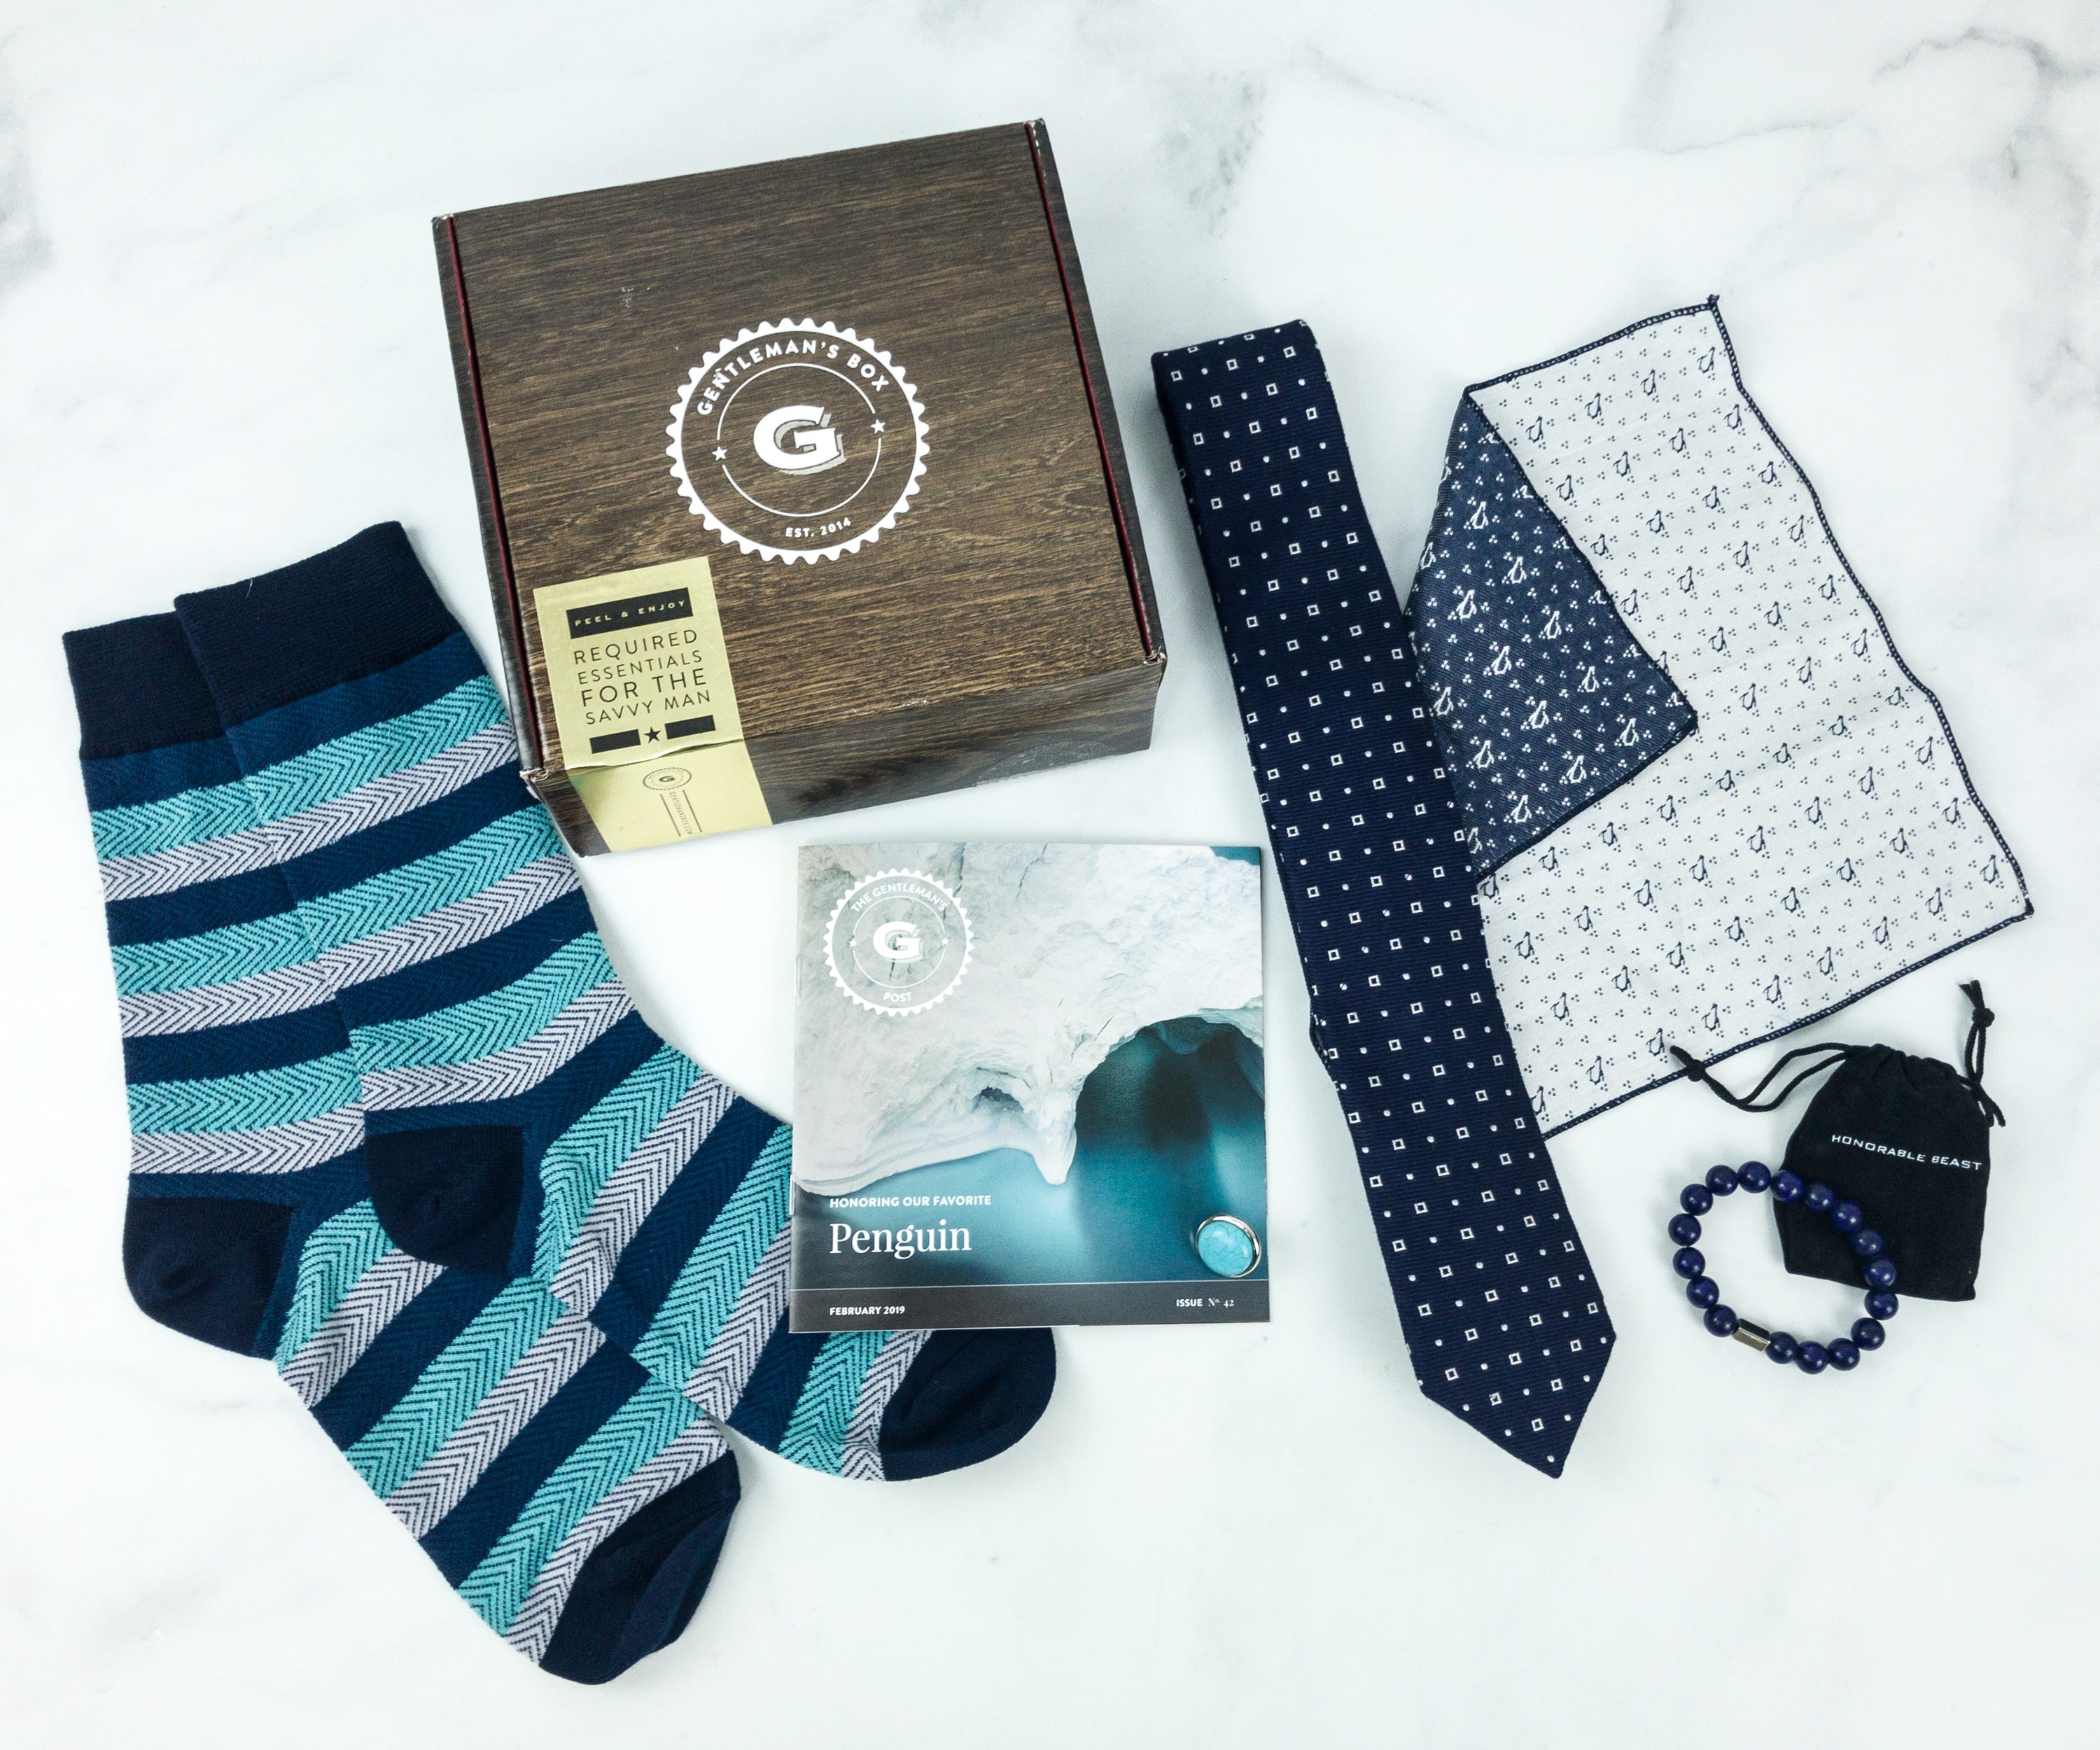 Gentleman's Box Coupon: Save 50% On First Classic Box!